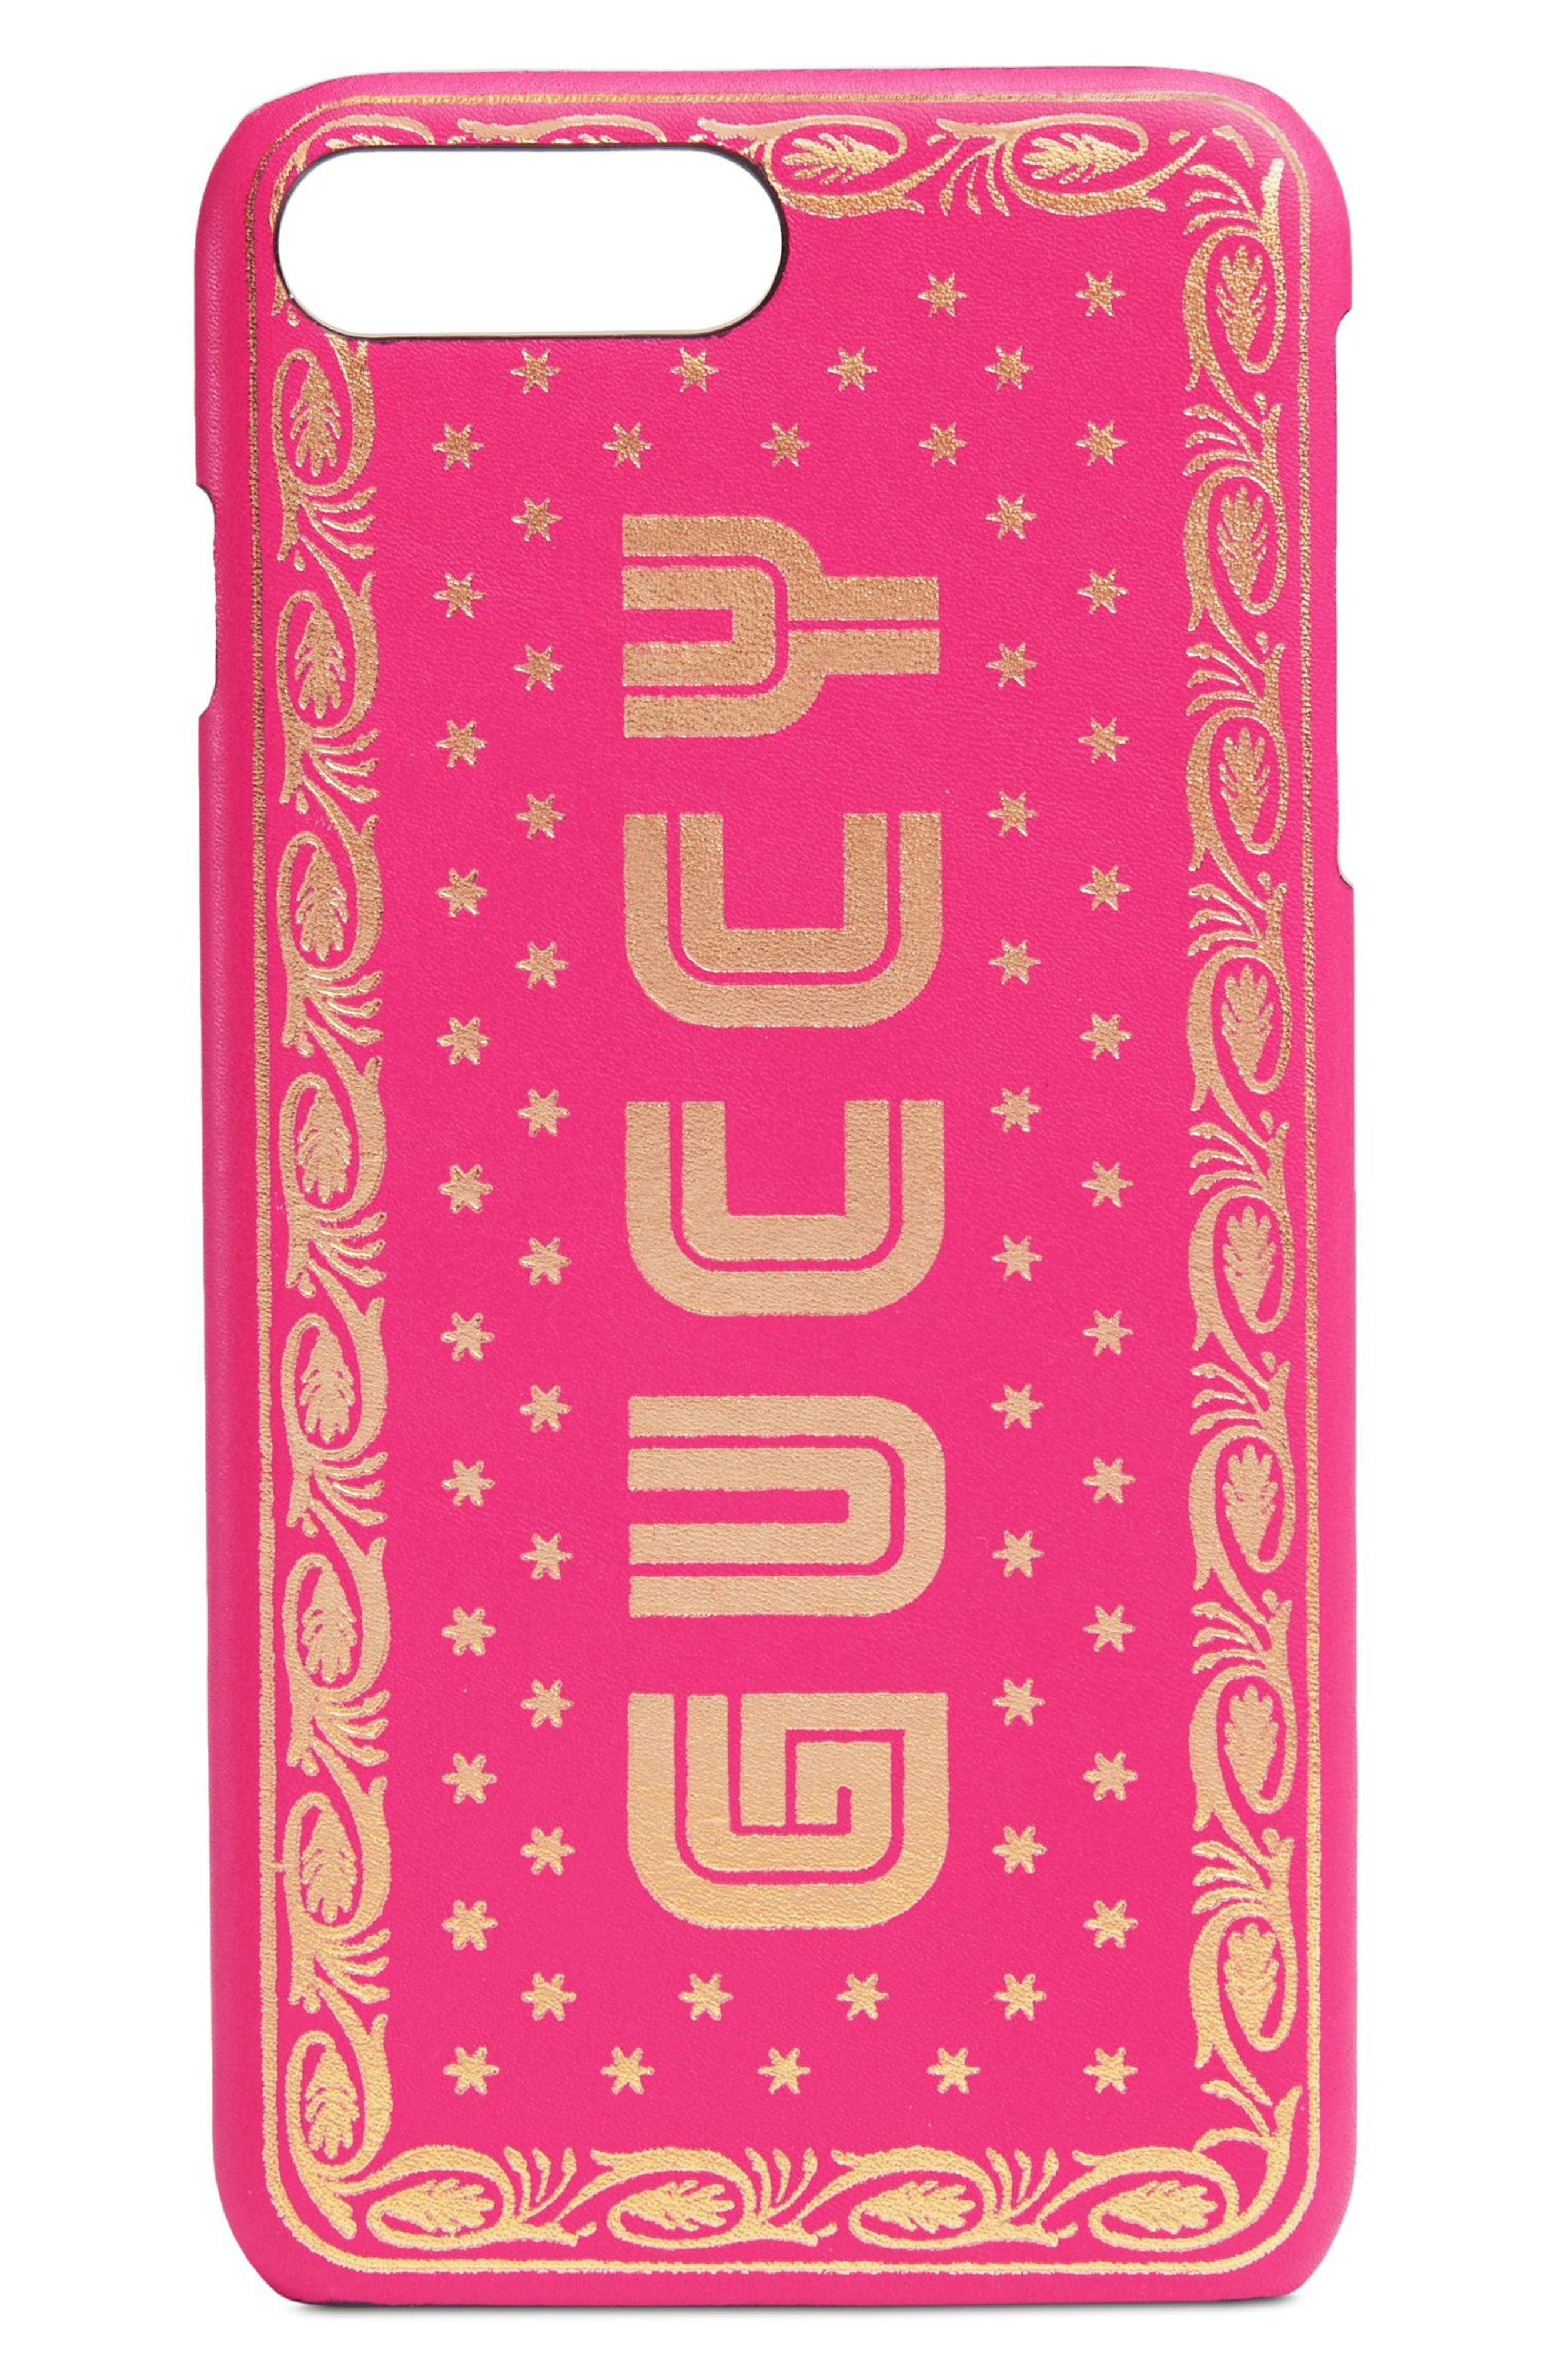 Gucci Guccy Logo Moon & Stars Leather iPhone 7/8 Plus Case